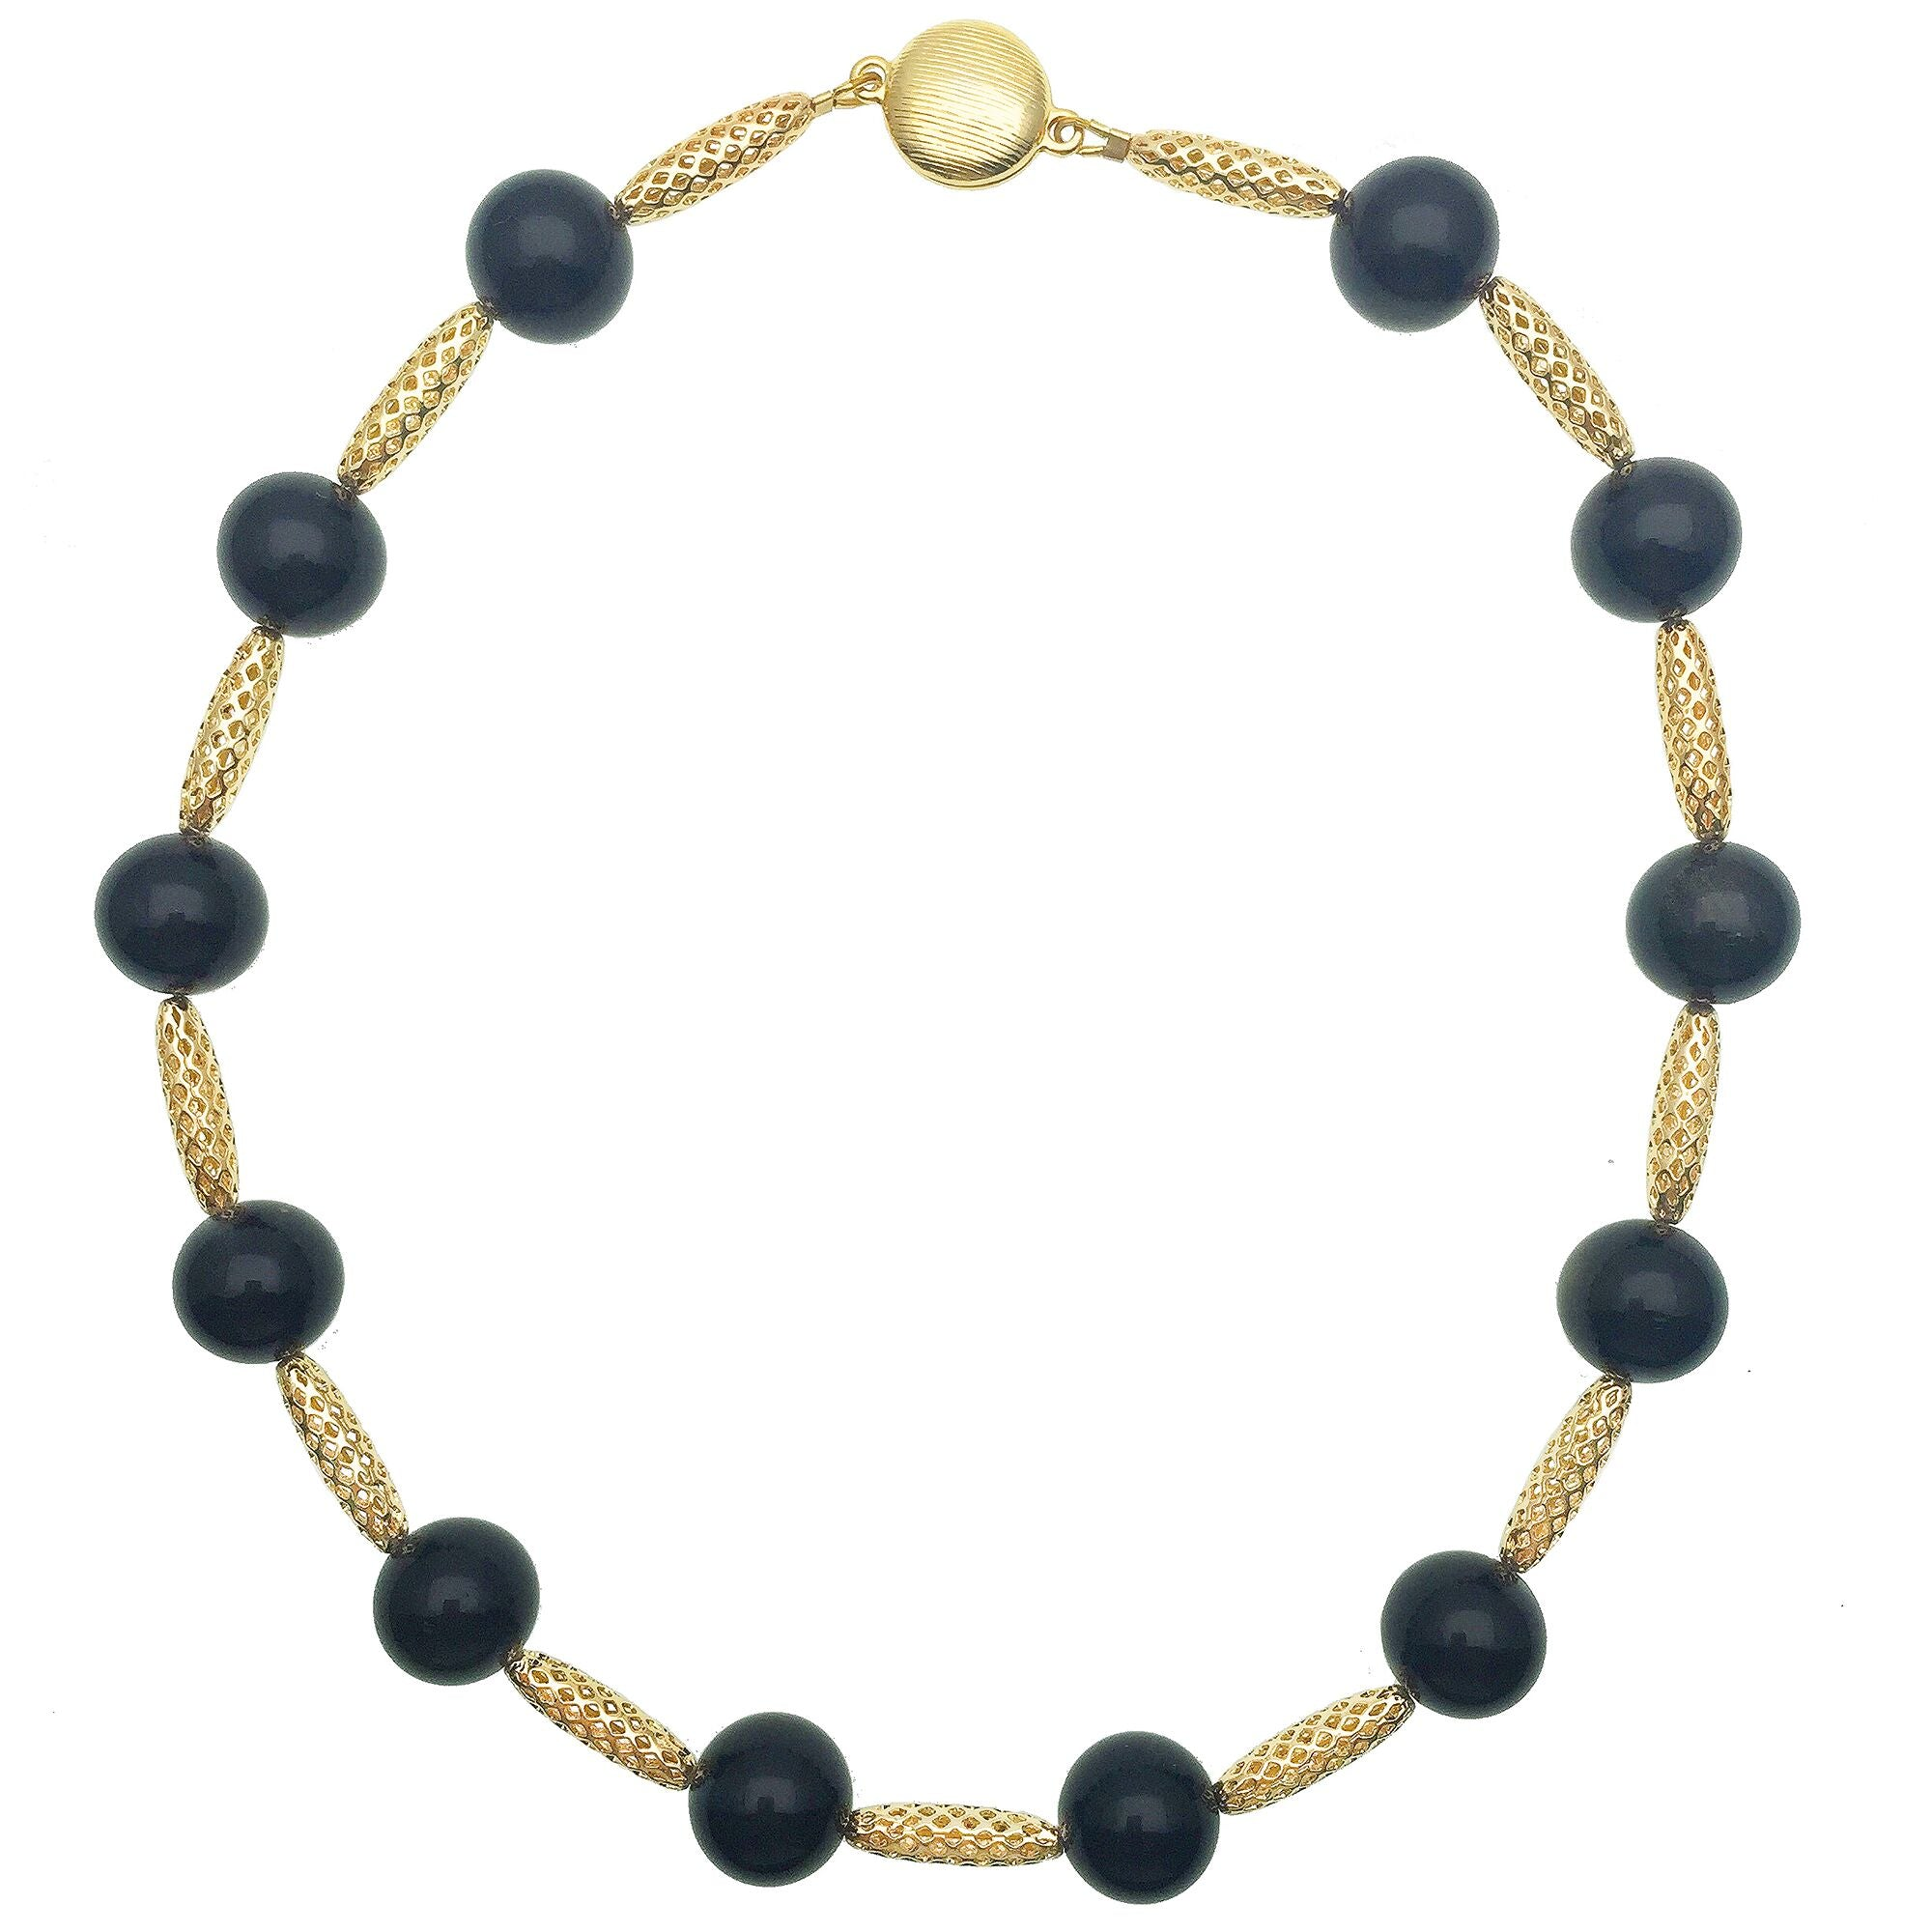 Black Tiger Eye and Gold Bead Necklace - Shopidpearl